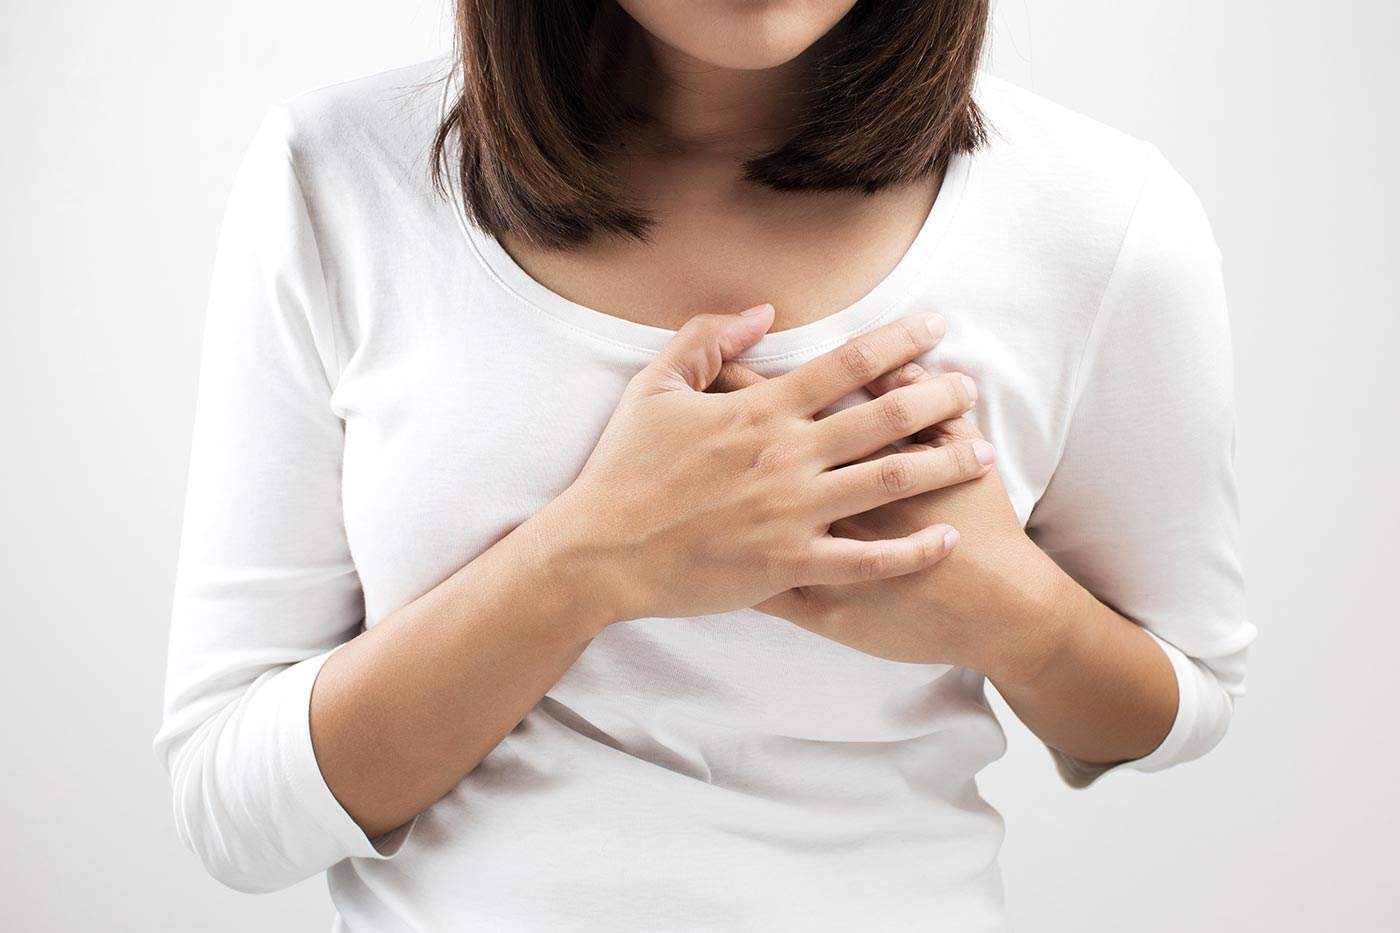 Breast Pain After Breastfeeding